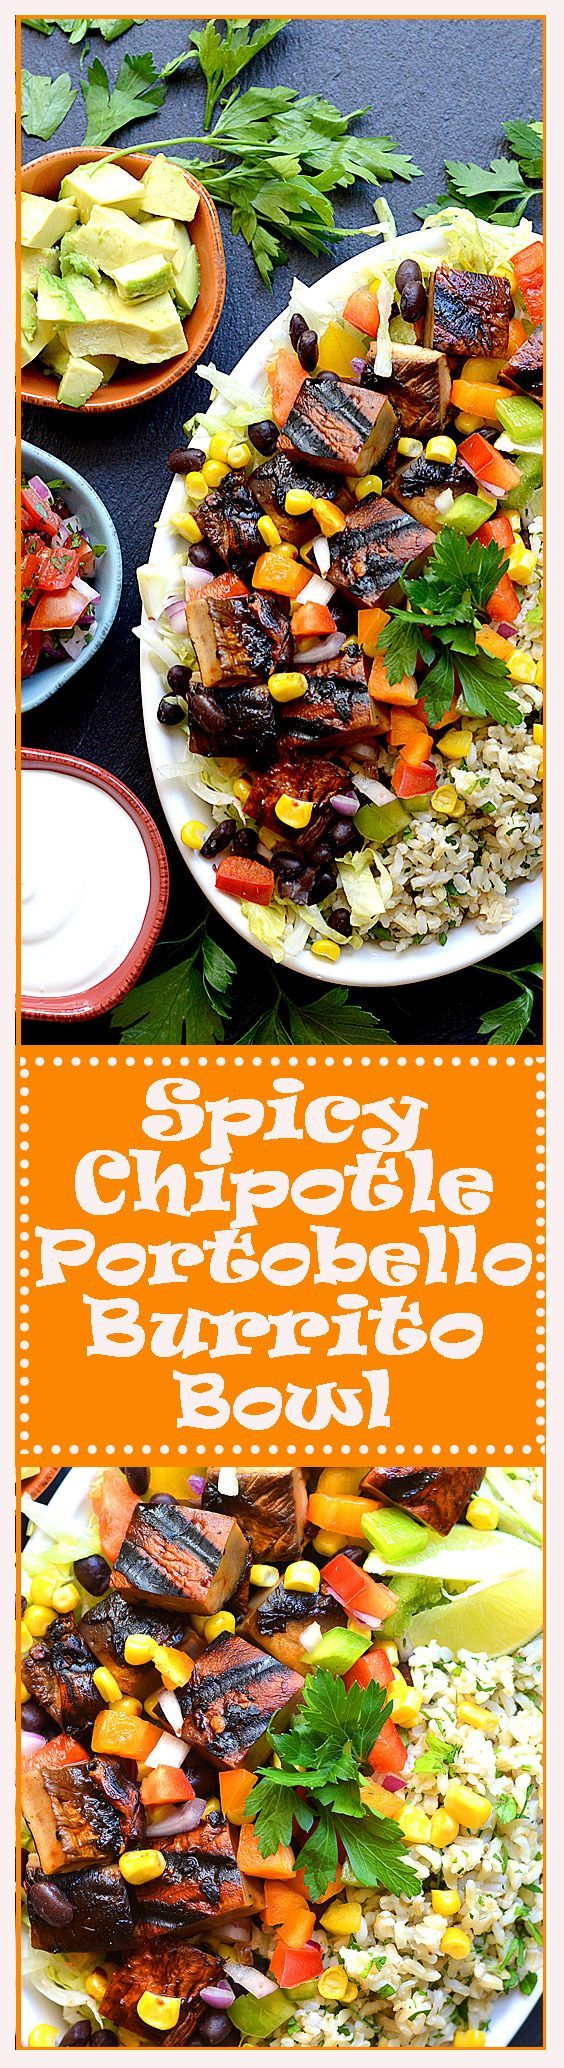 ‪#‎ad‬ NEW RECIPE on the blog! SPICY CHIPOTLE PORTOBELLO BURRITO BOWLS ***PLUS*** Click to visit the original blog post here>>> http://theveglife.com/spicy-chipotle-portobello-burrito-bo…/, leave a comment on how you enjoy your burrito bowls & enter for a chance to win a $100 VISA gift card! If you like this recipe, please share it with your friends. They can enter to win too! :) ‪#‎sk‬